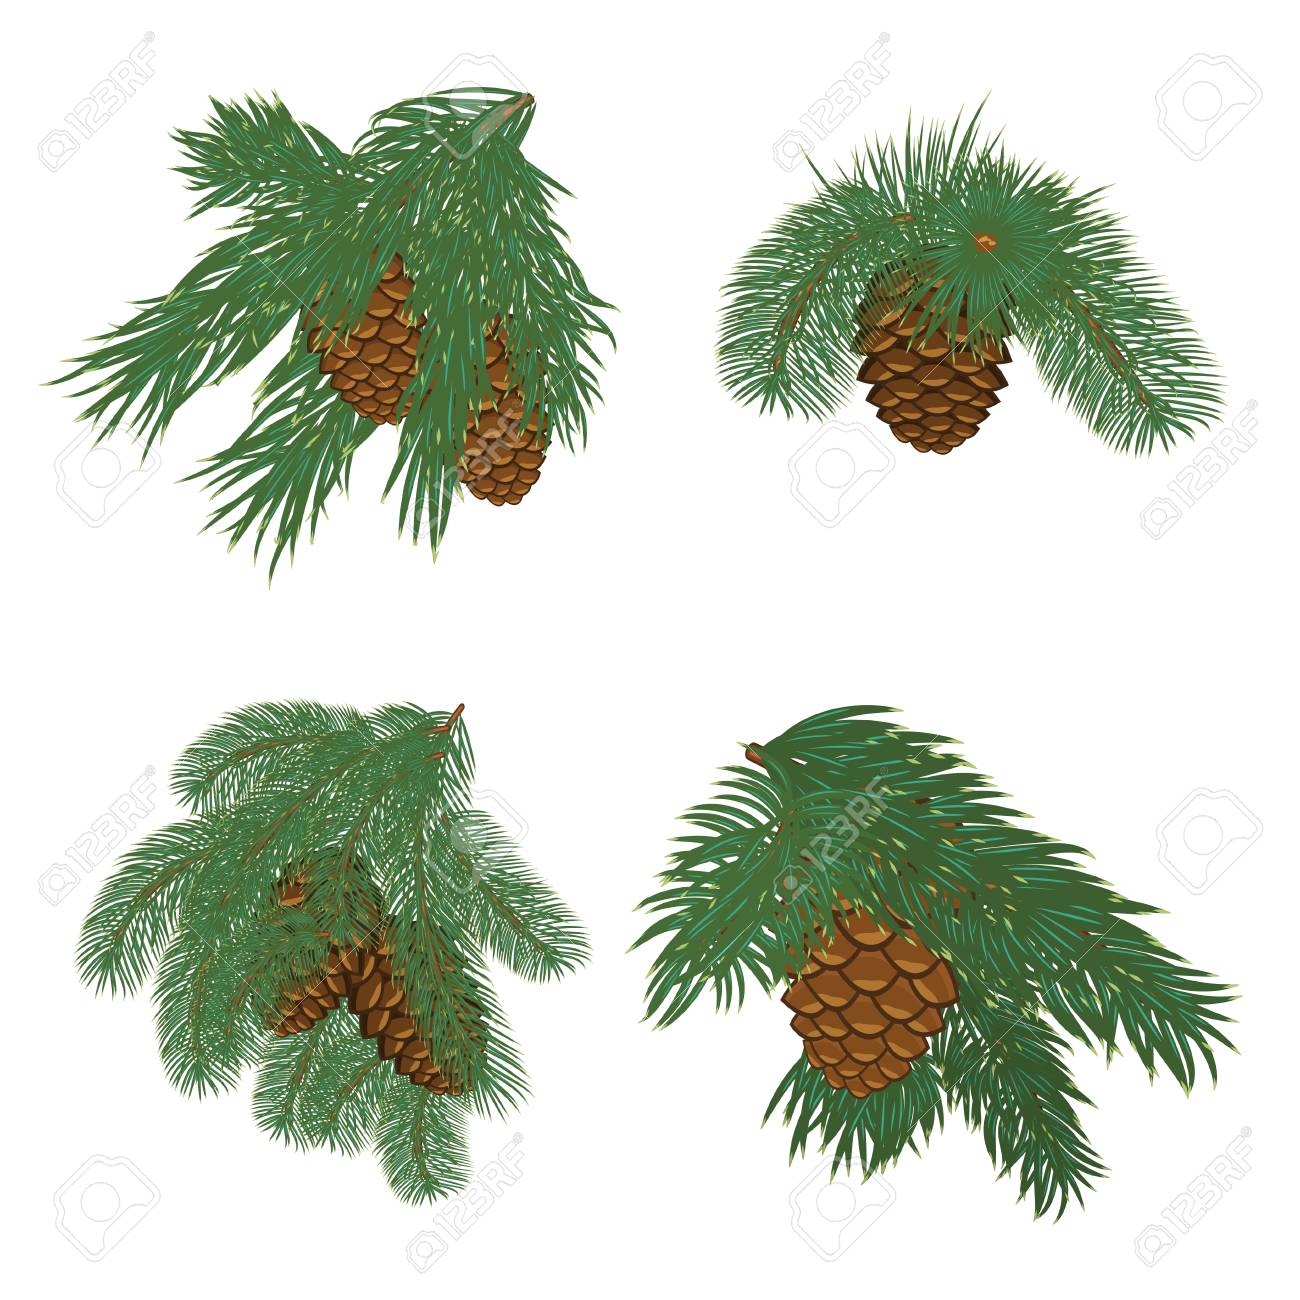 collection of christmas tree branches with pine cones stock vector 95225666 - Christmas Tree With Pine Cones